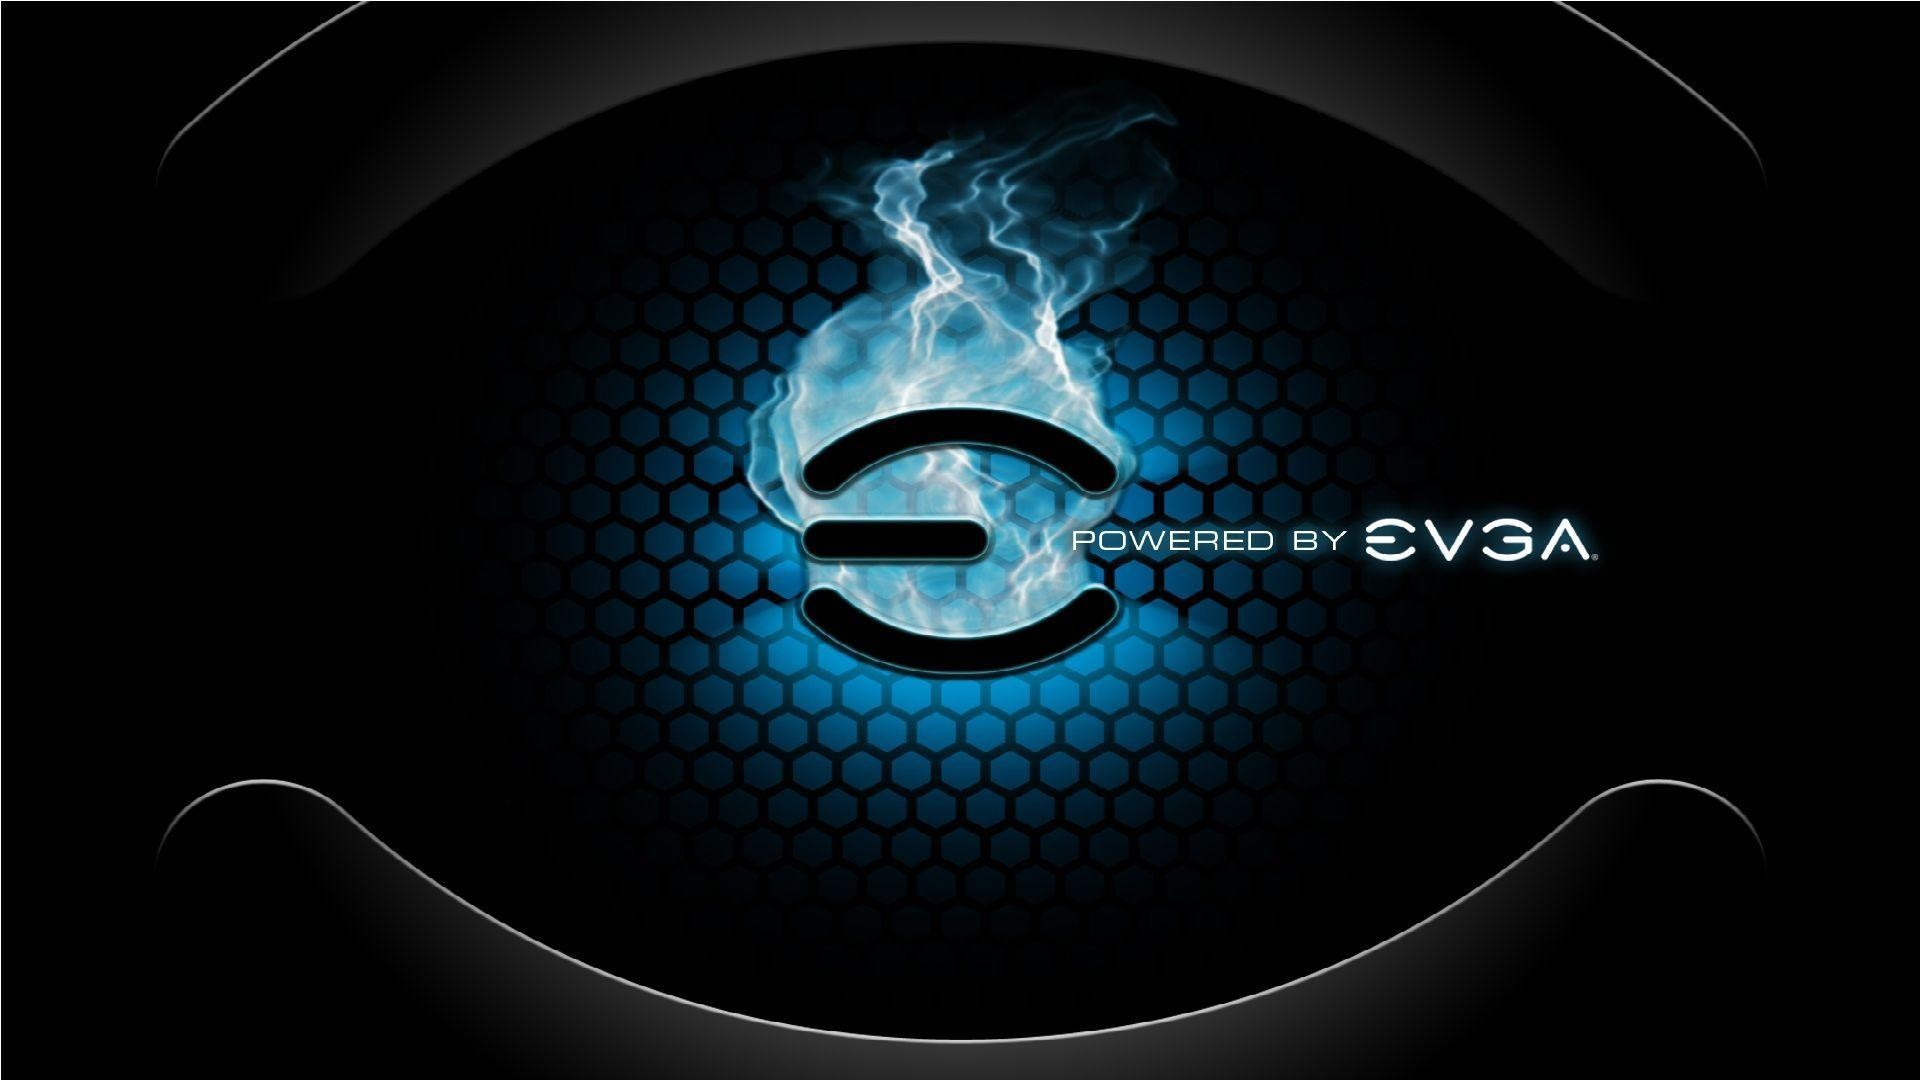 1920x1080  evga wallpapers? - EVGA Forums